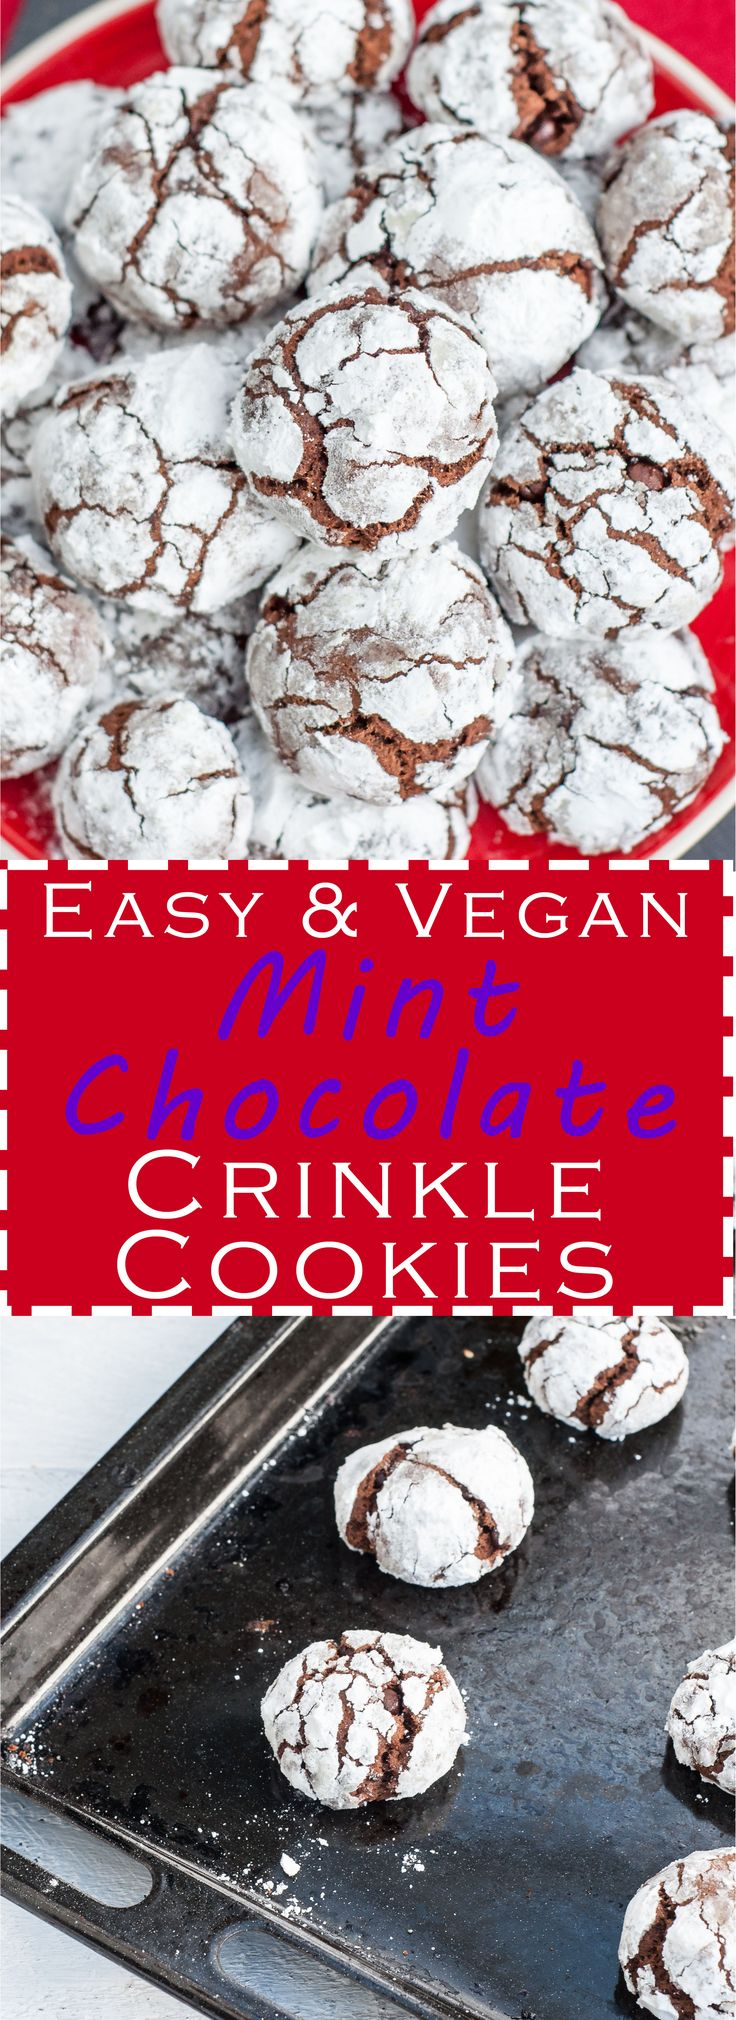 Easy & Vegan Mint Chocolate Crinkle Cookies Recipe. Make this around the holidays and Christmas to impress your friends and family. They'll never guess this cookie recipe is vegan! | VeganFamilyRecipes.com | #peppermint #dairy-free #egg-free